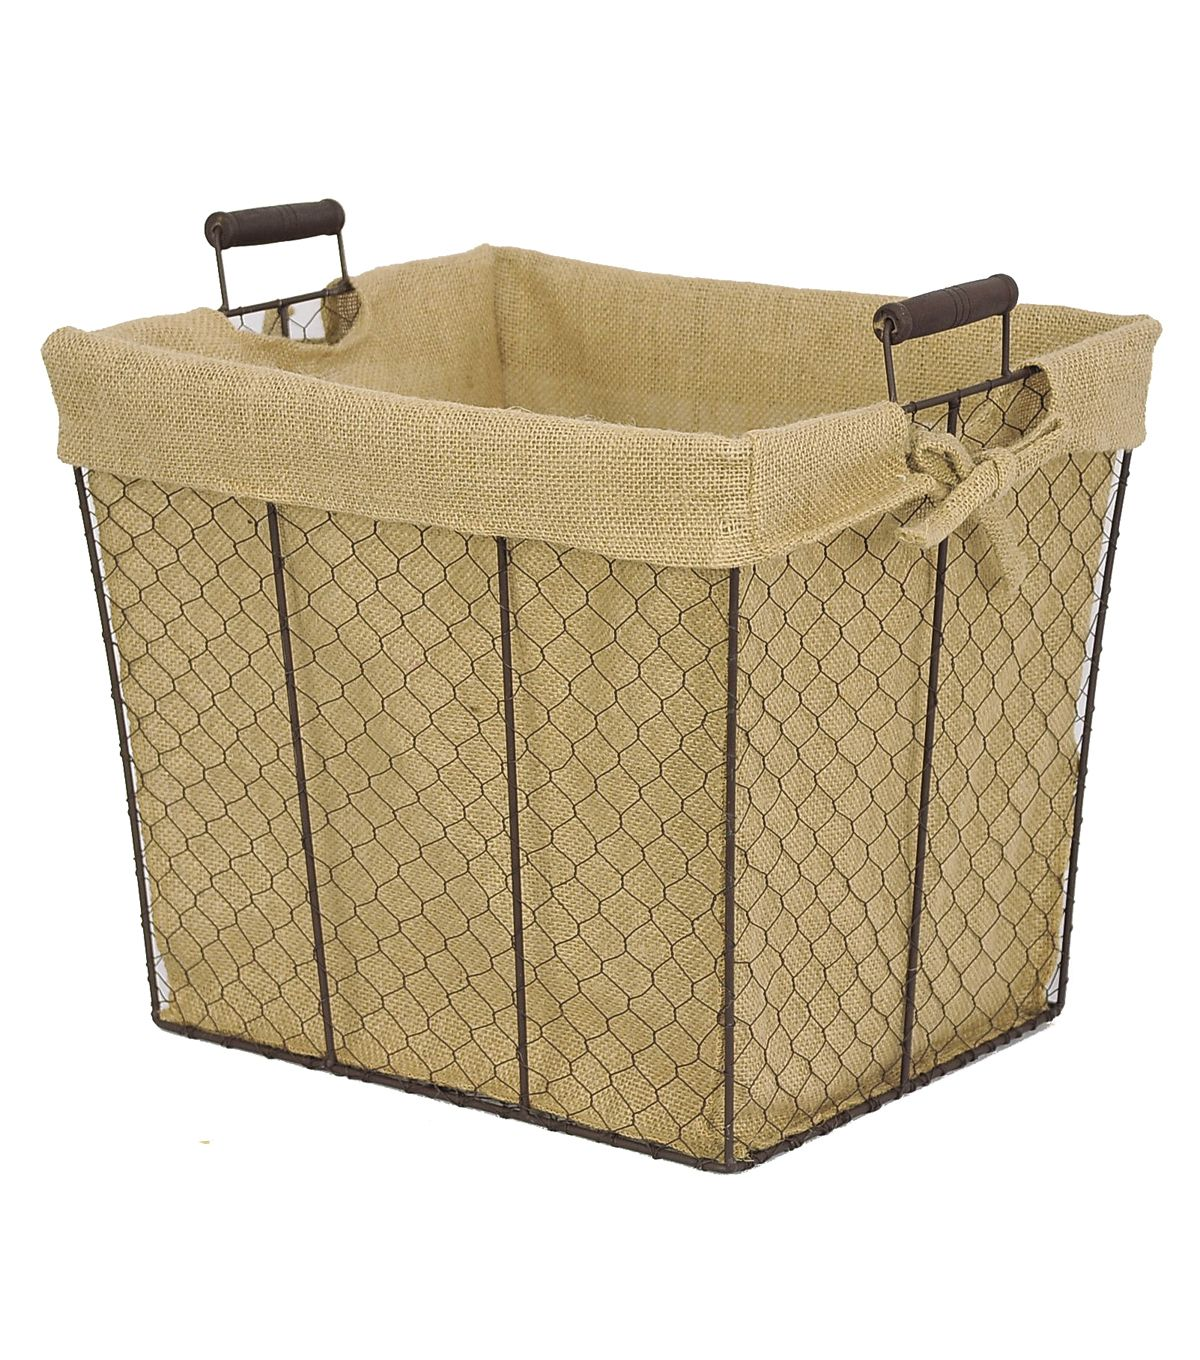 Organizing Essentials 15x12 Wire Basket With Burlap Liner At Joann.com